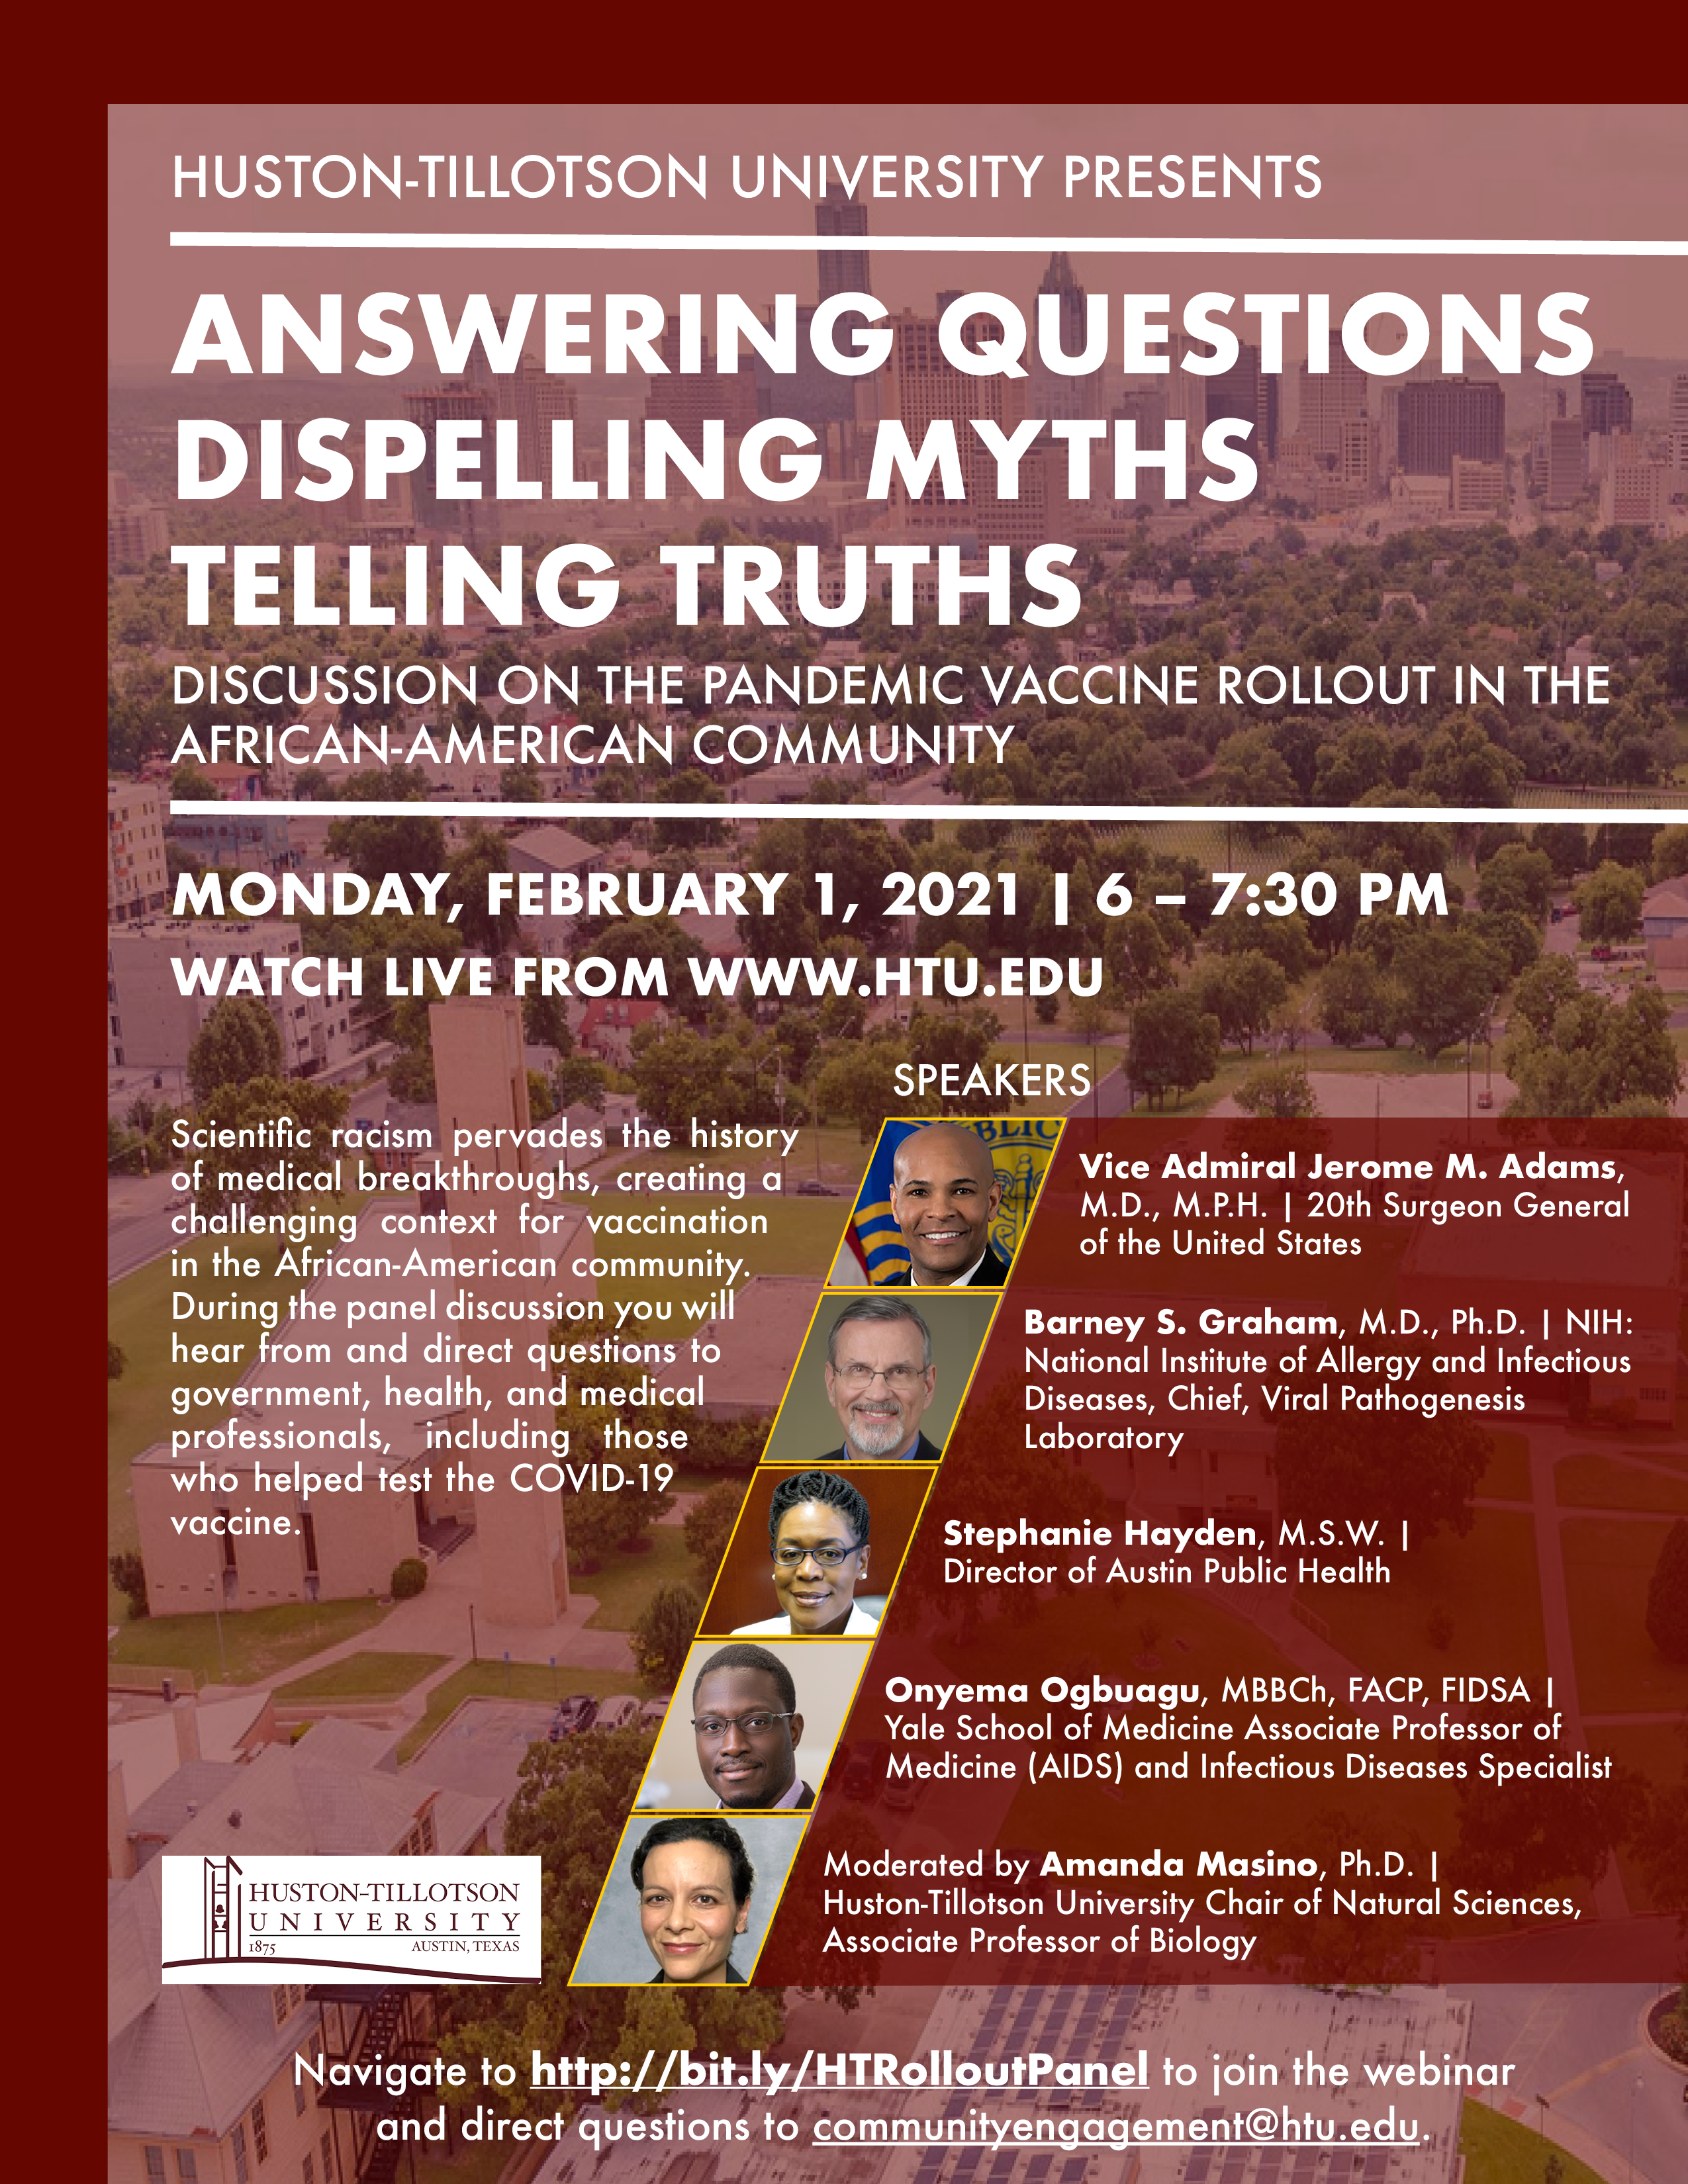 Answering Questions Dispelling Myths Telling Truths Pandemic Vaccine Roll Out in the African American Community Monday, February 1, 2021   6 p.m.